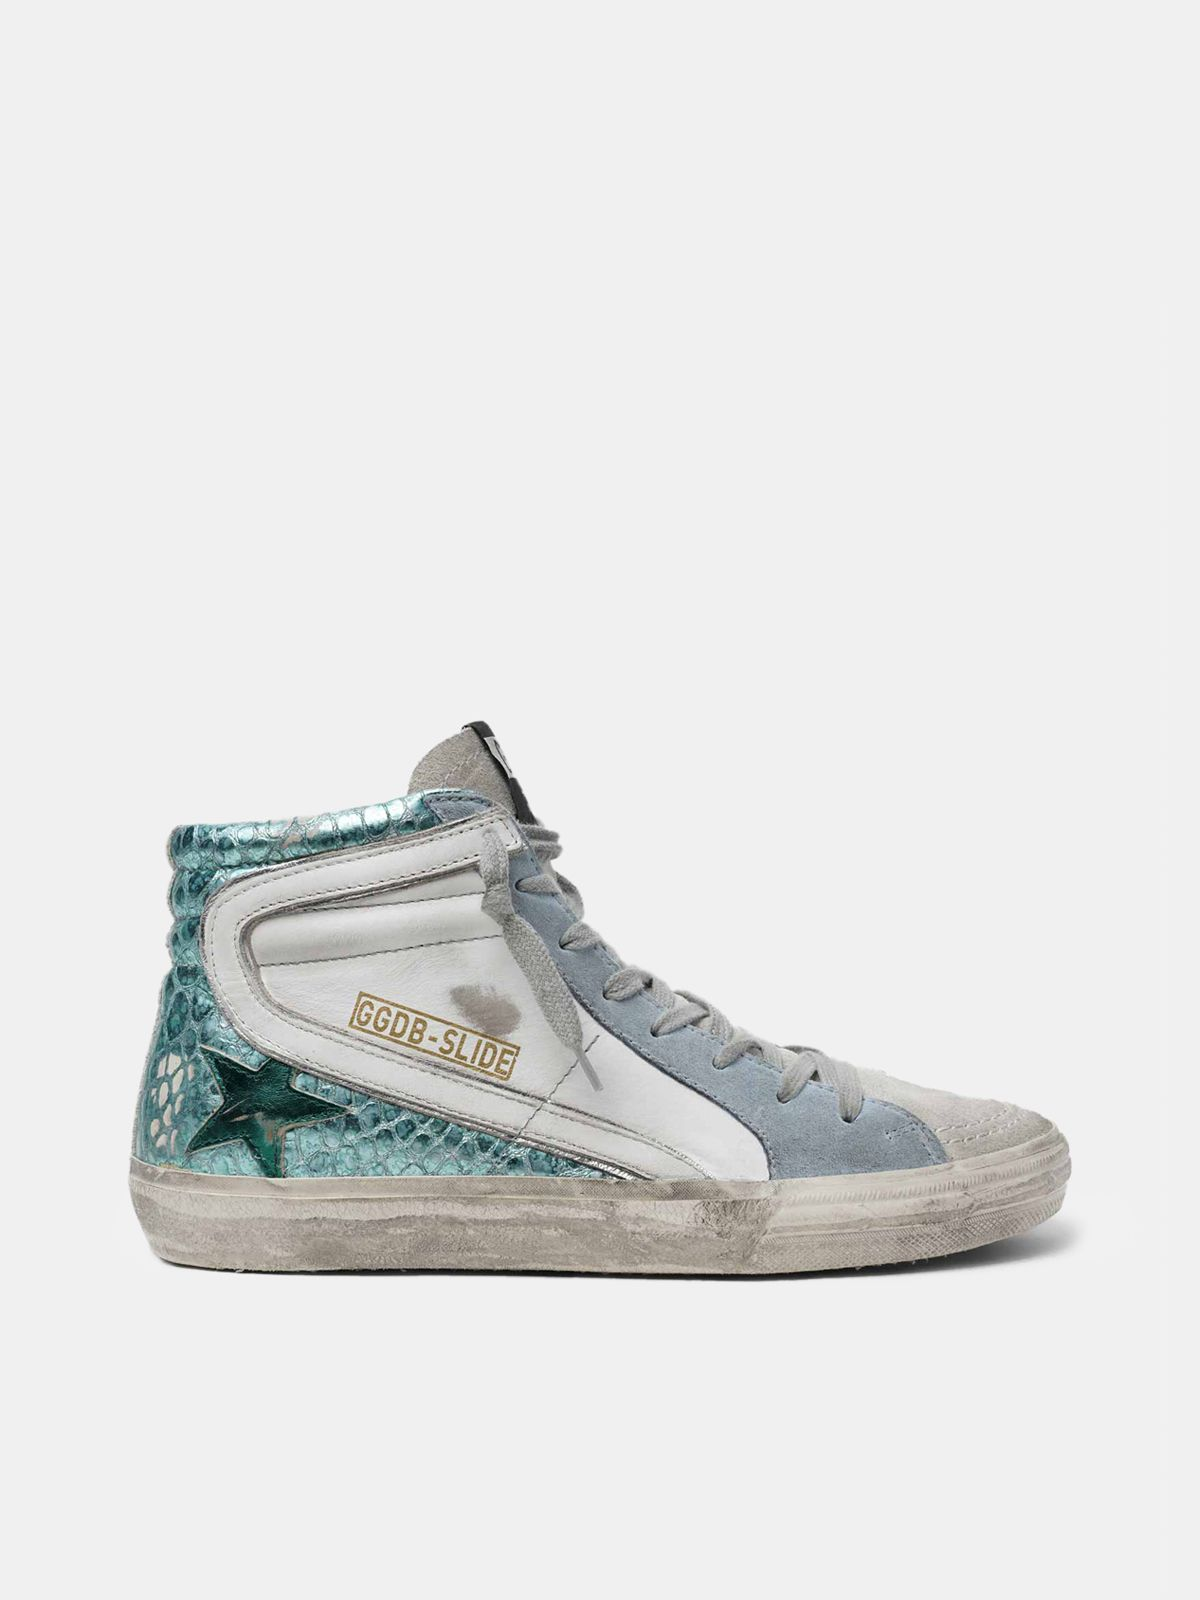 Golden Goose - Slide sneakers in crocodile-print green laminated leather in